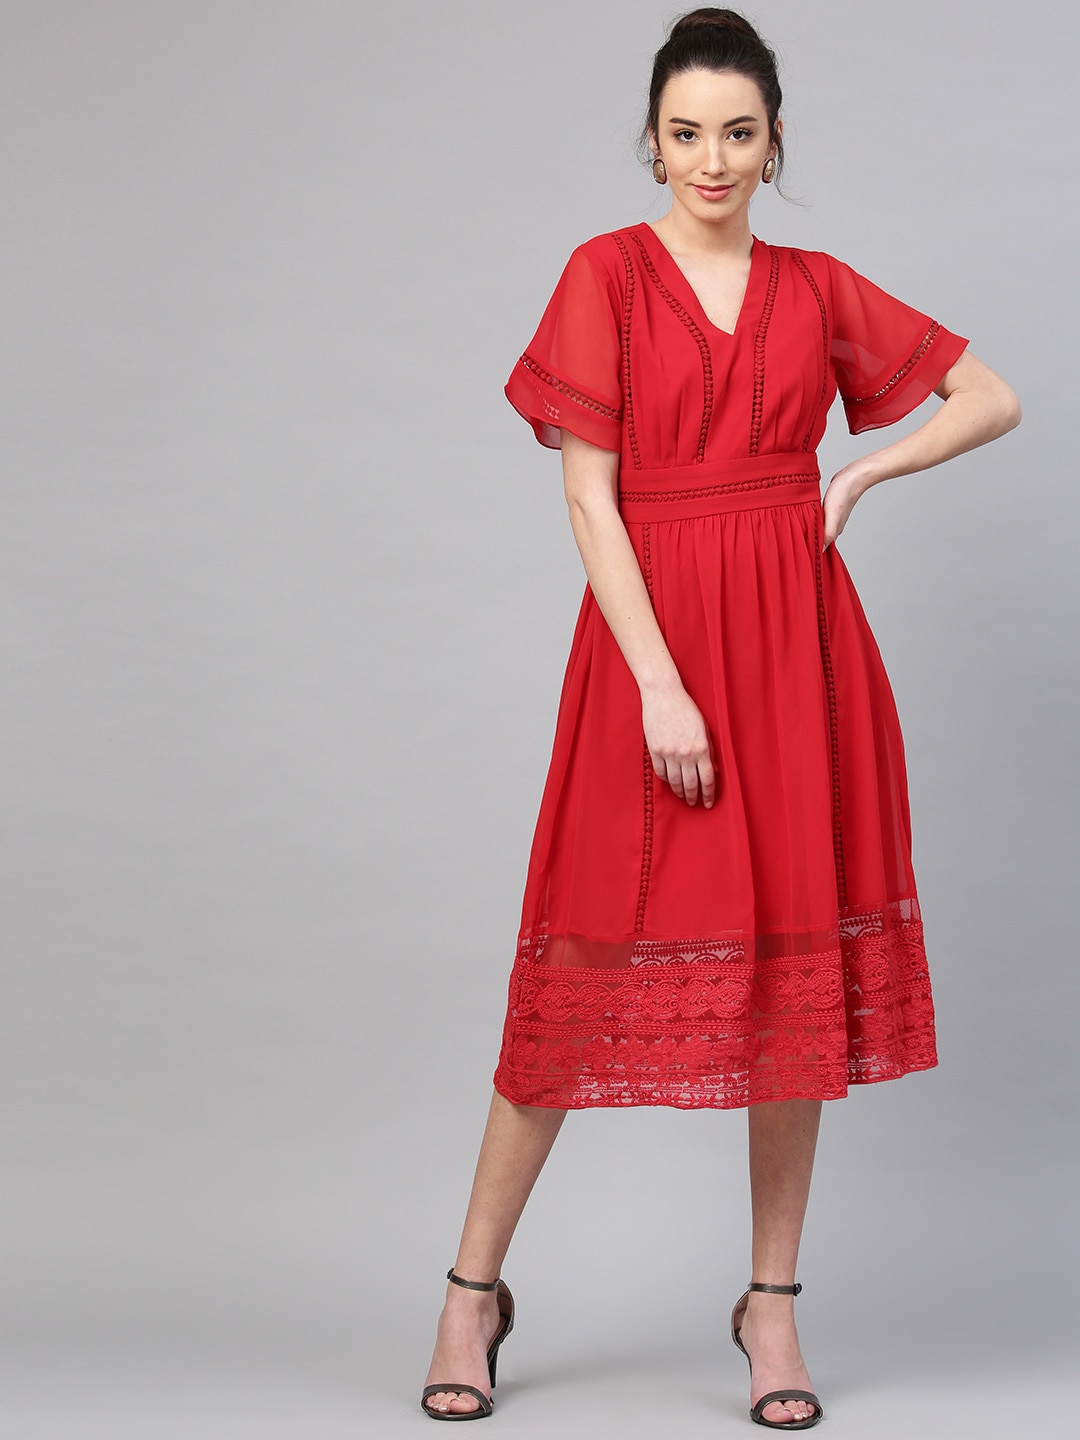 a2892a515a1 Red Dress - Buy Trendy Red Colour Dresses Online in India